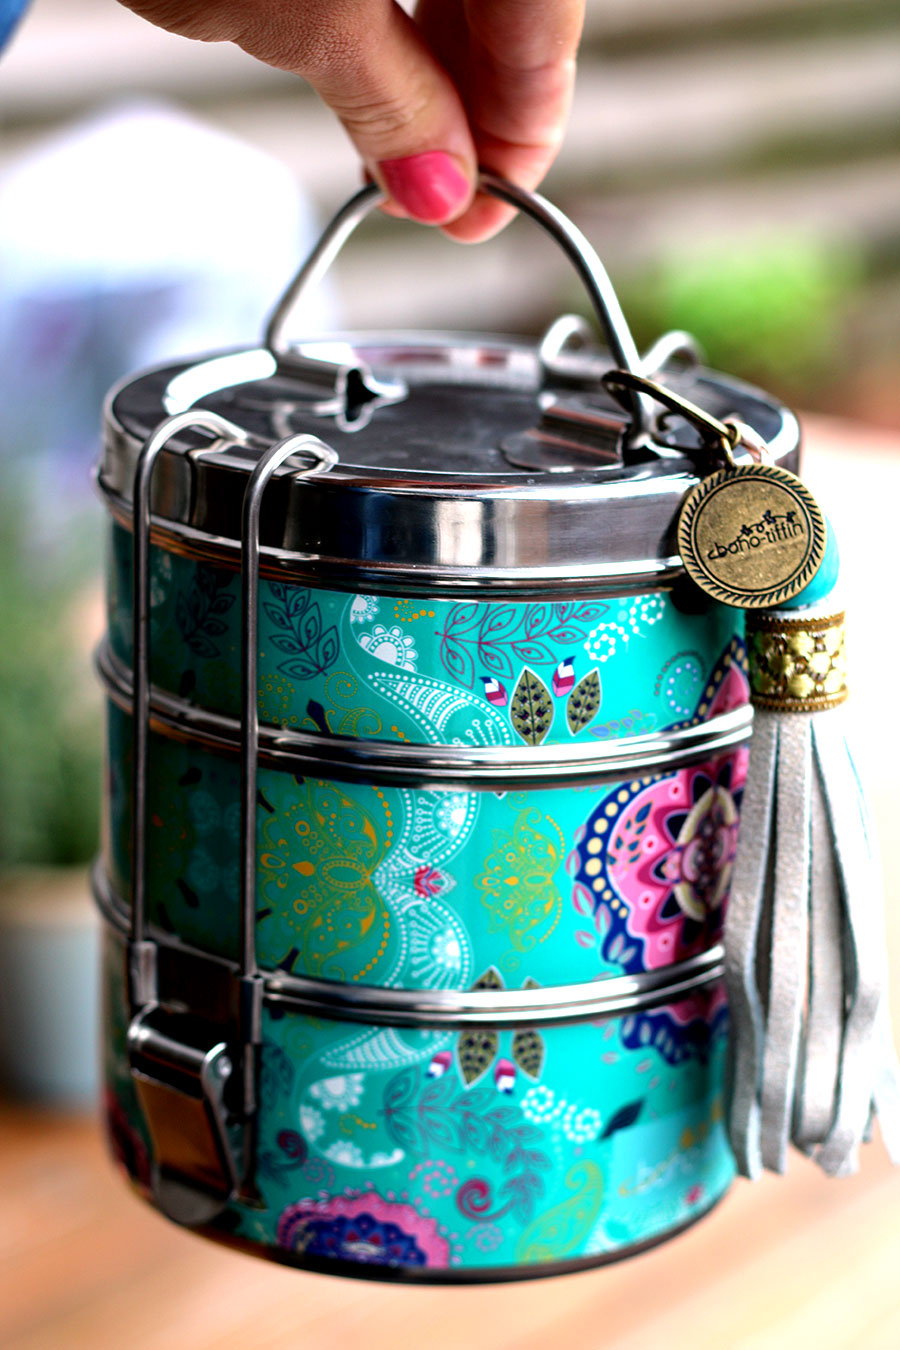 GIVE-AWAY: Win een Boho-tiffin